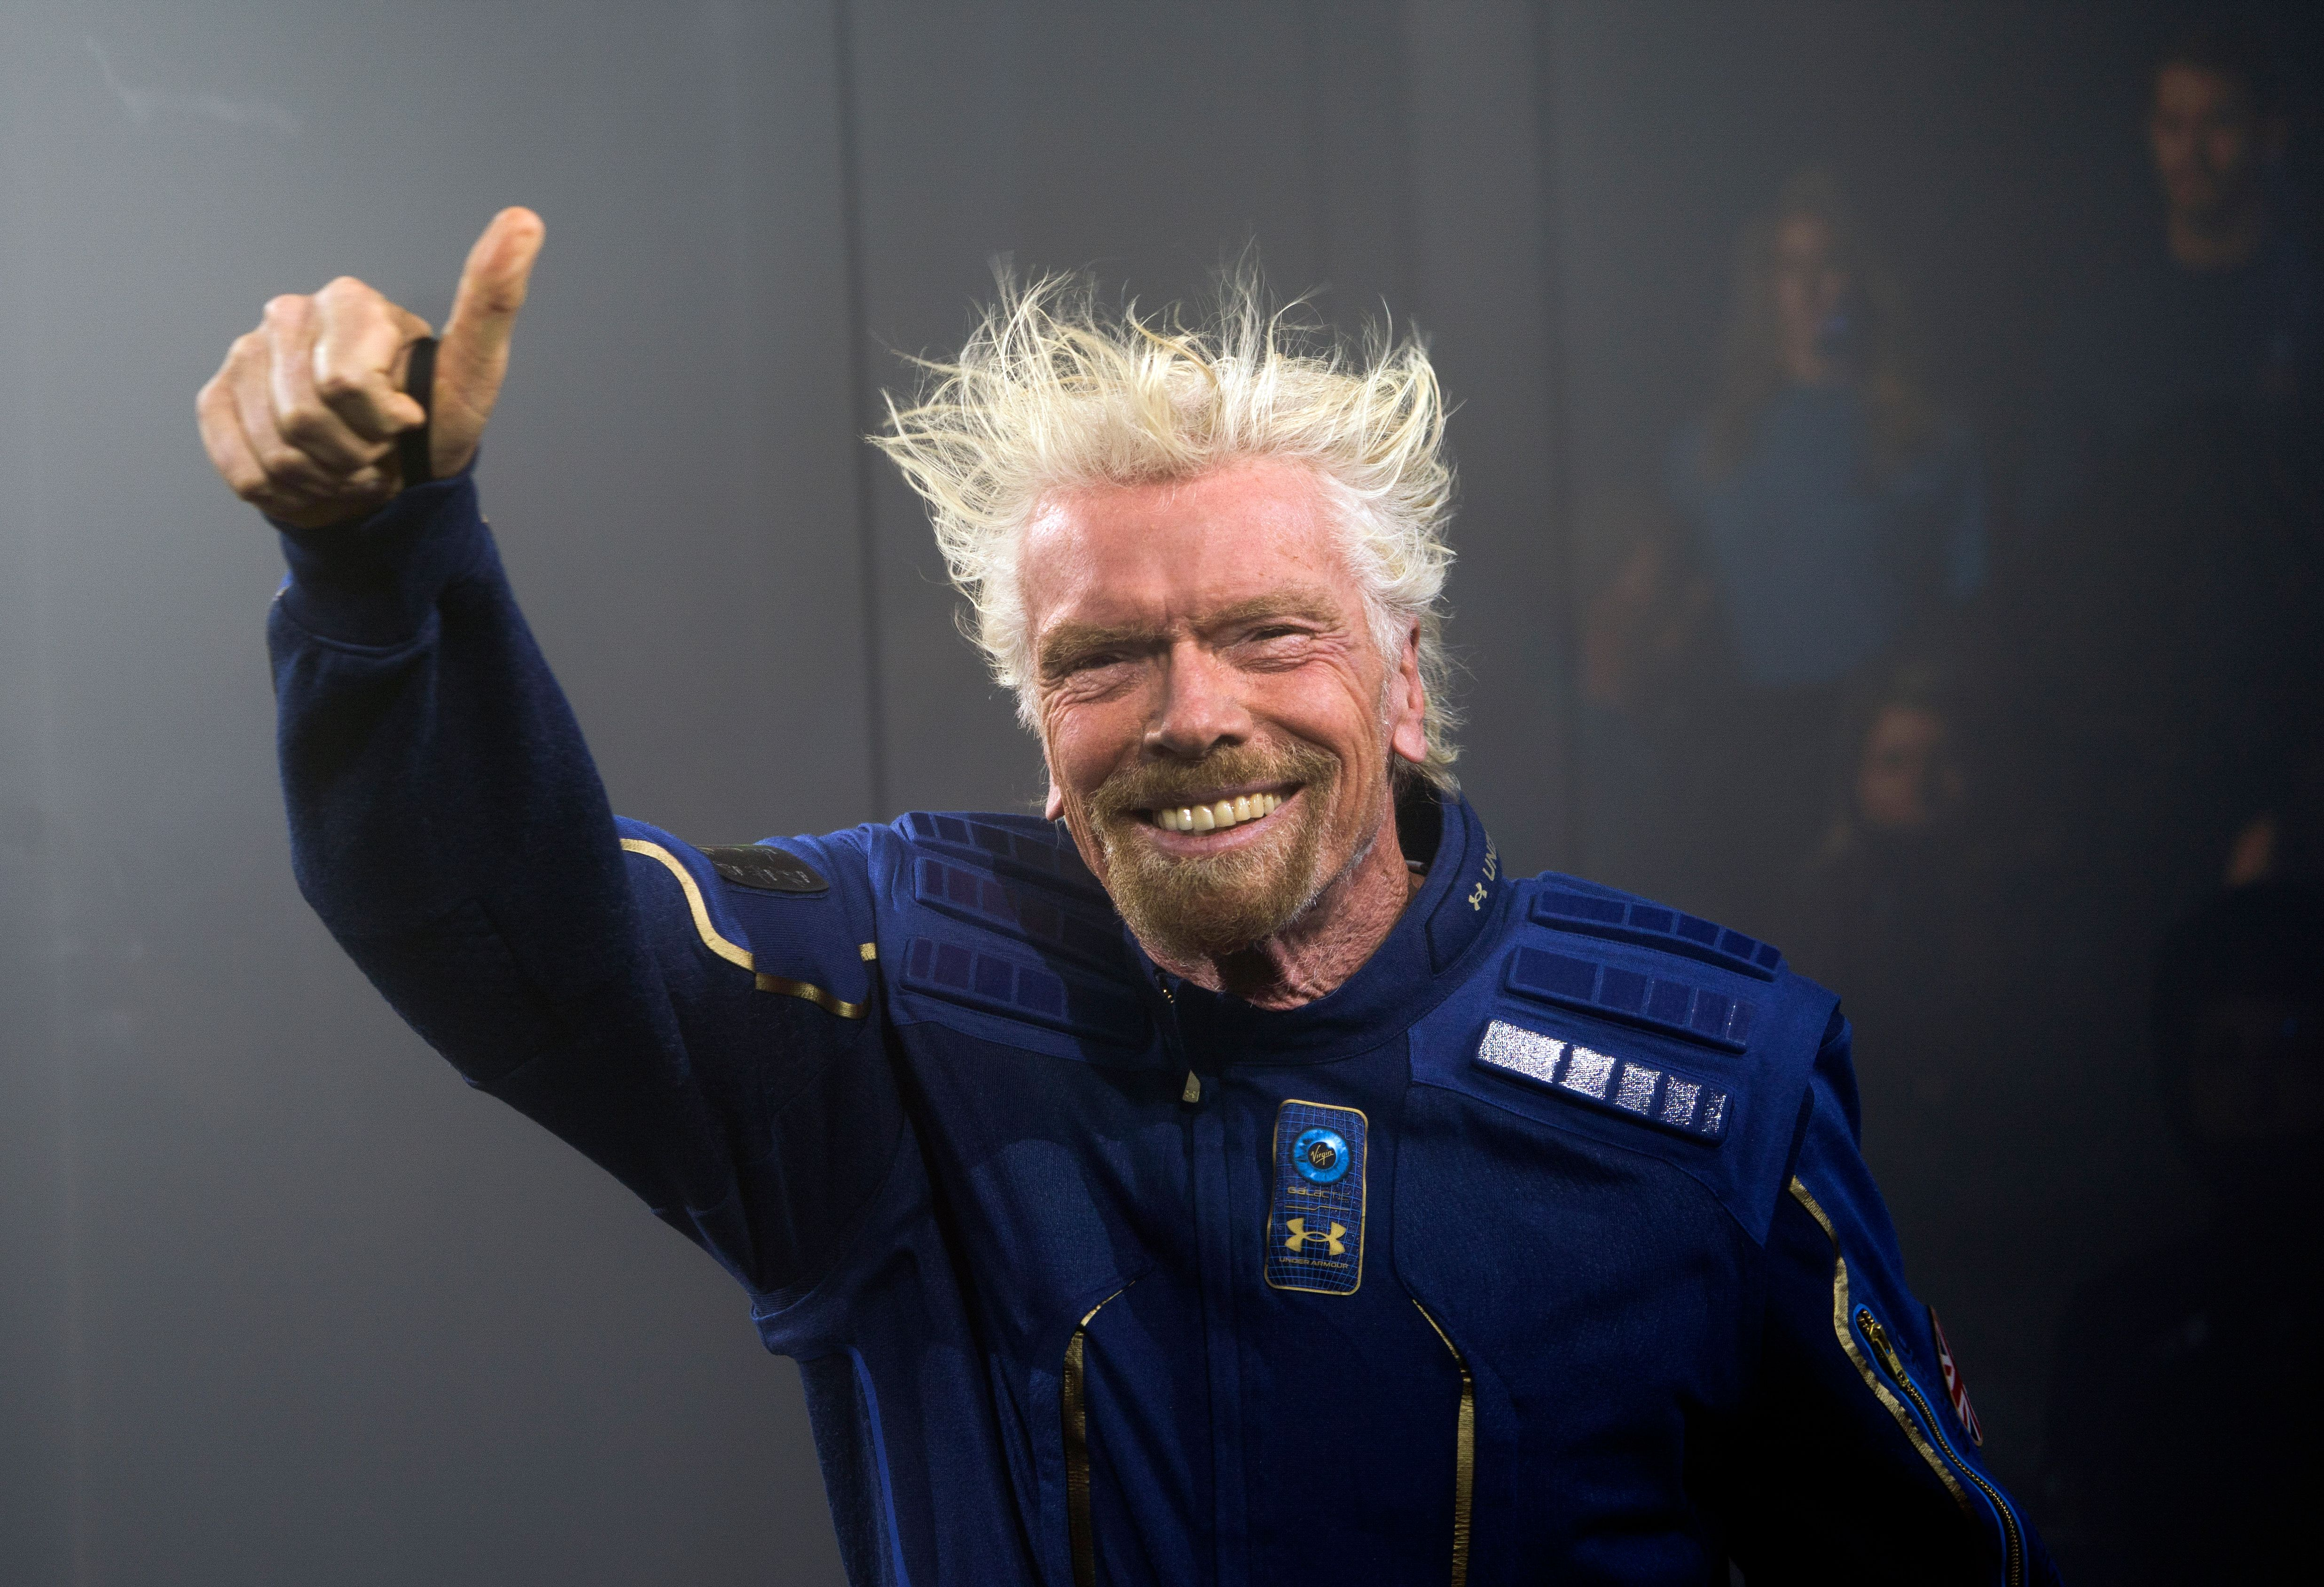 Virgin Galactic's Top Priority Is to Fly Richard Branson to Space by His 70th Birthday